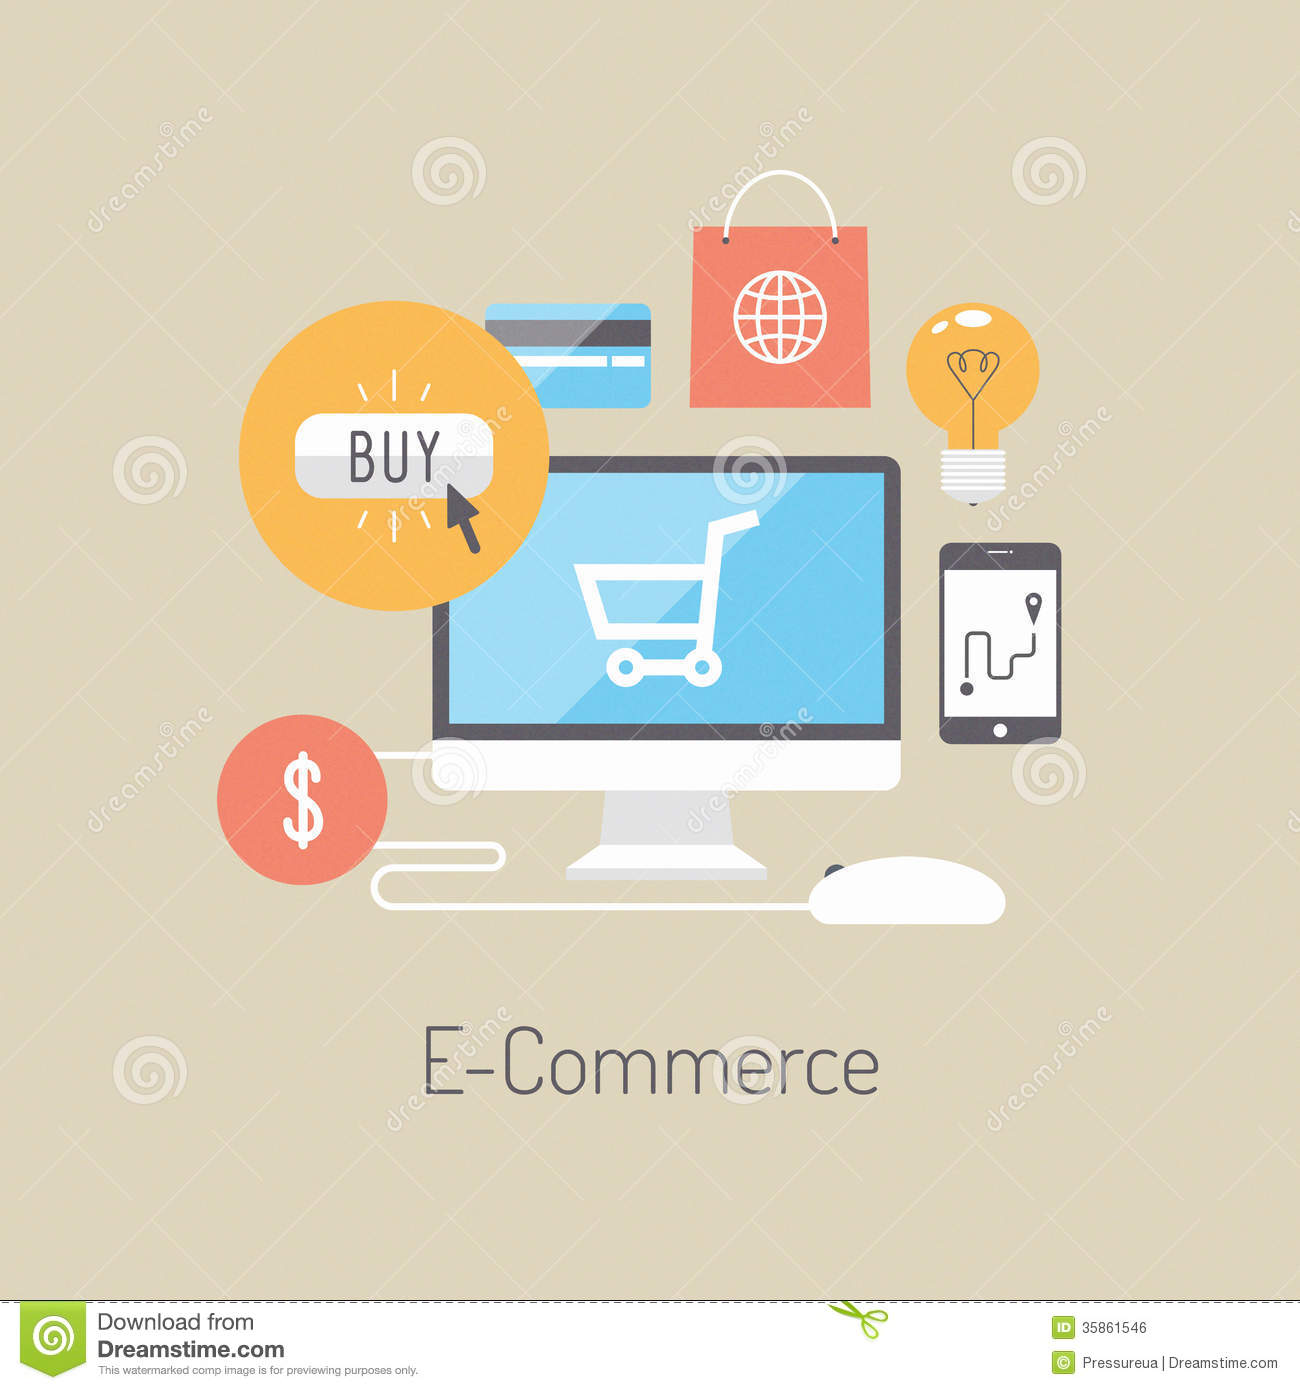 E commerce flat illustration concept stock vector Create a blueprint online